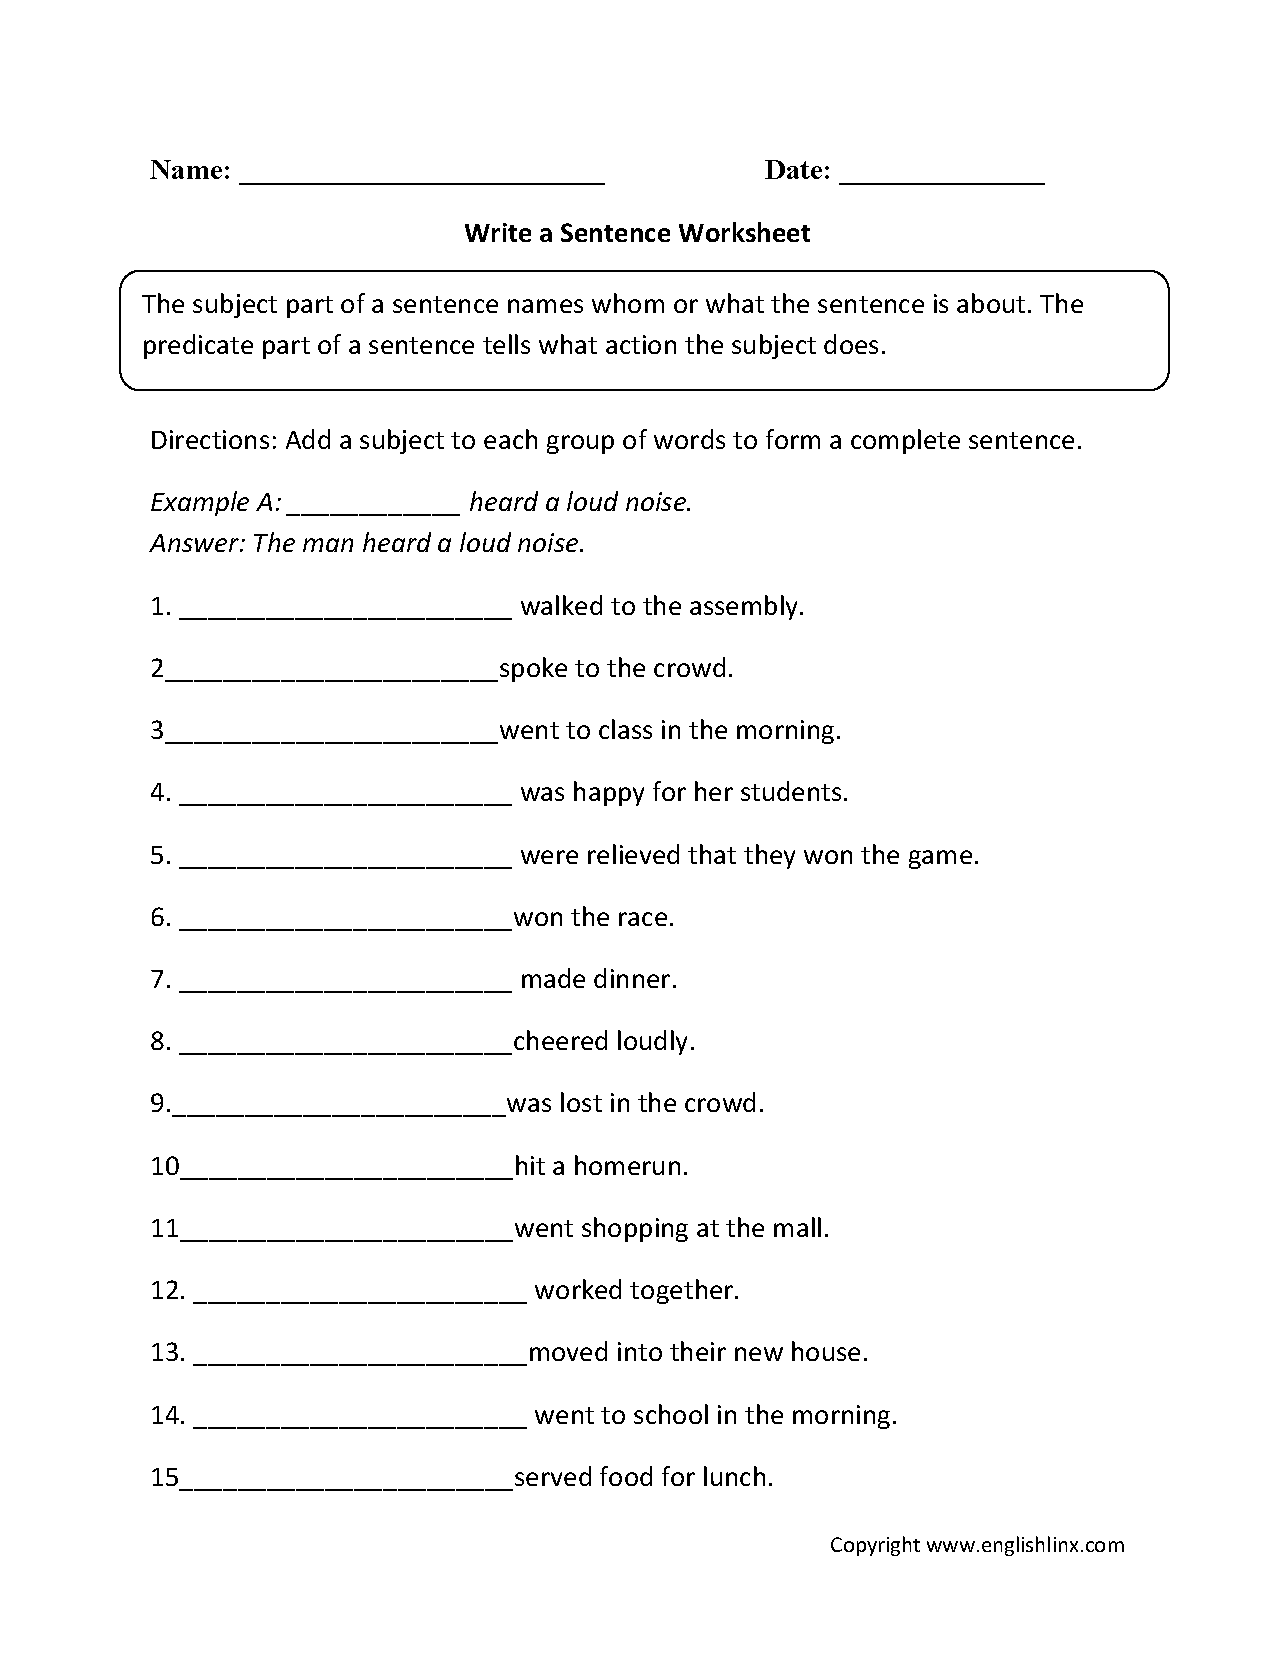 Worksheets Free Grammar Worksheets 5th Grade sentence structure worksheets building worksheets